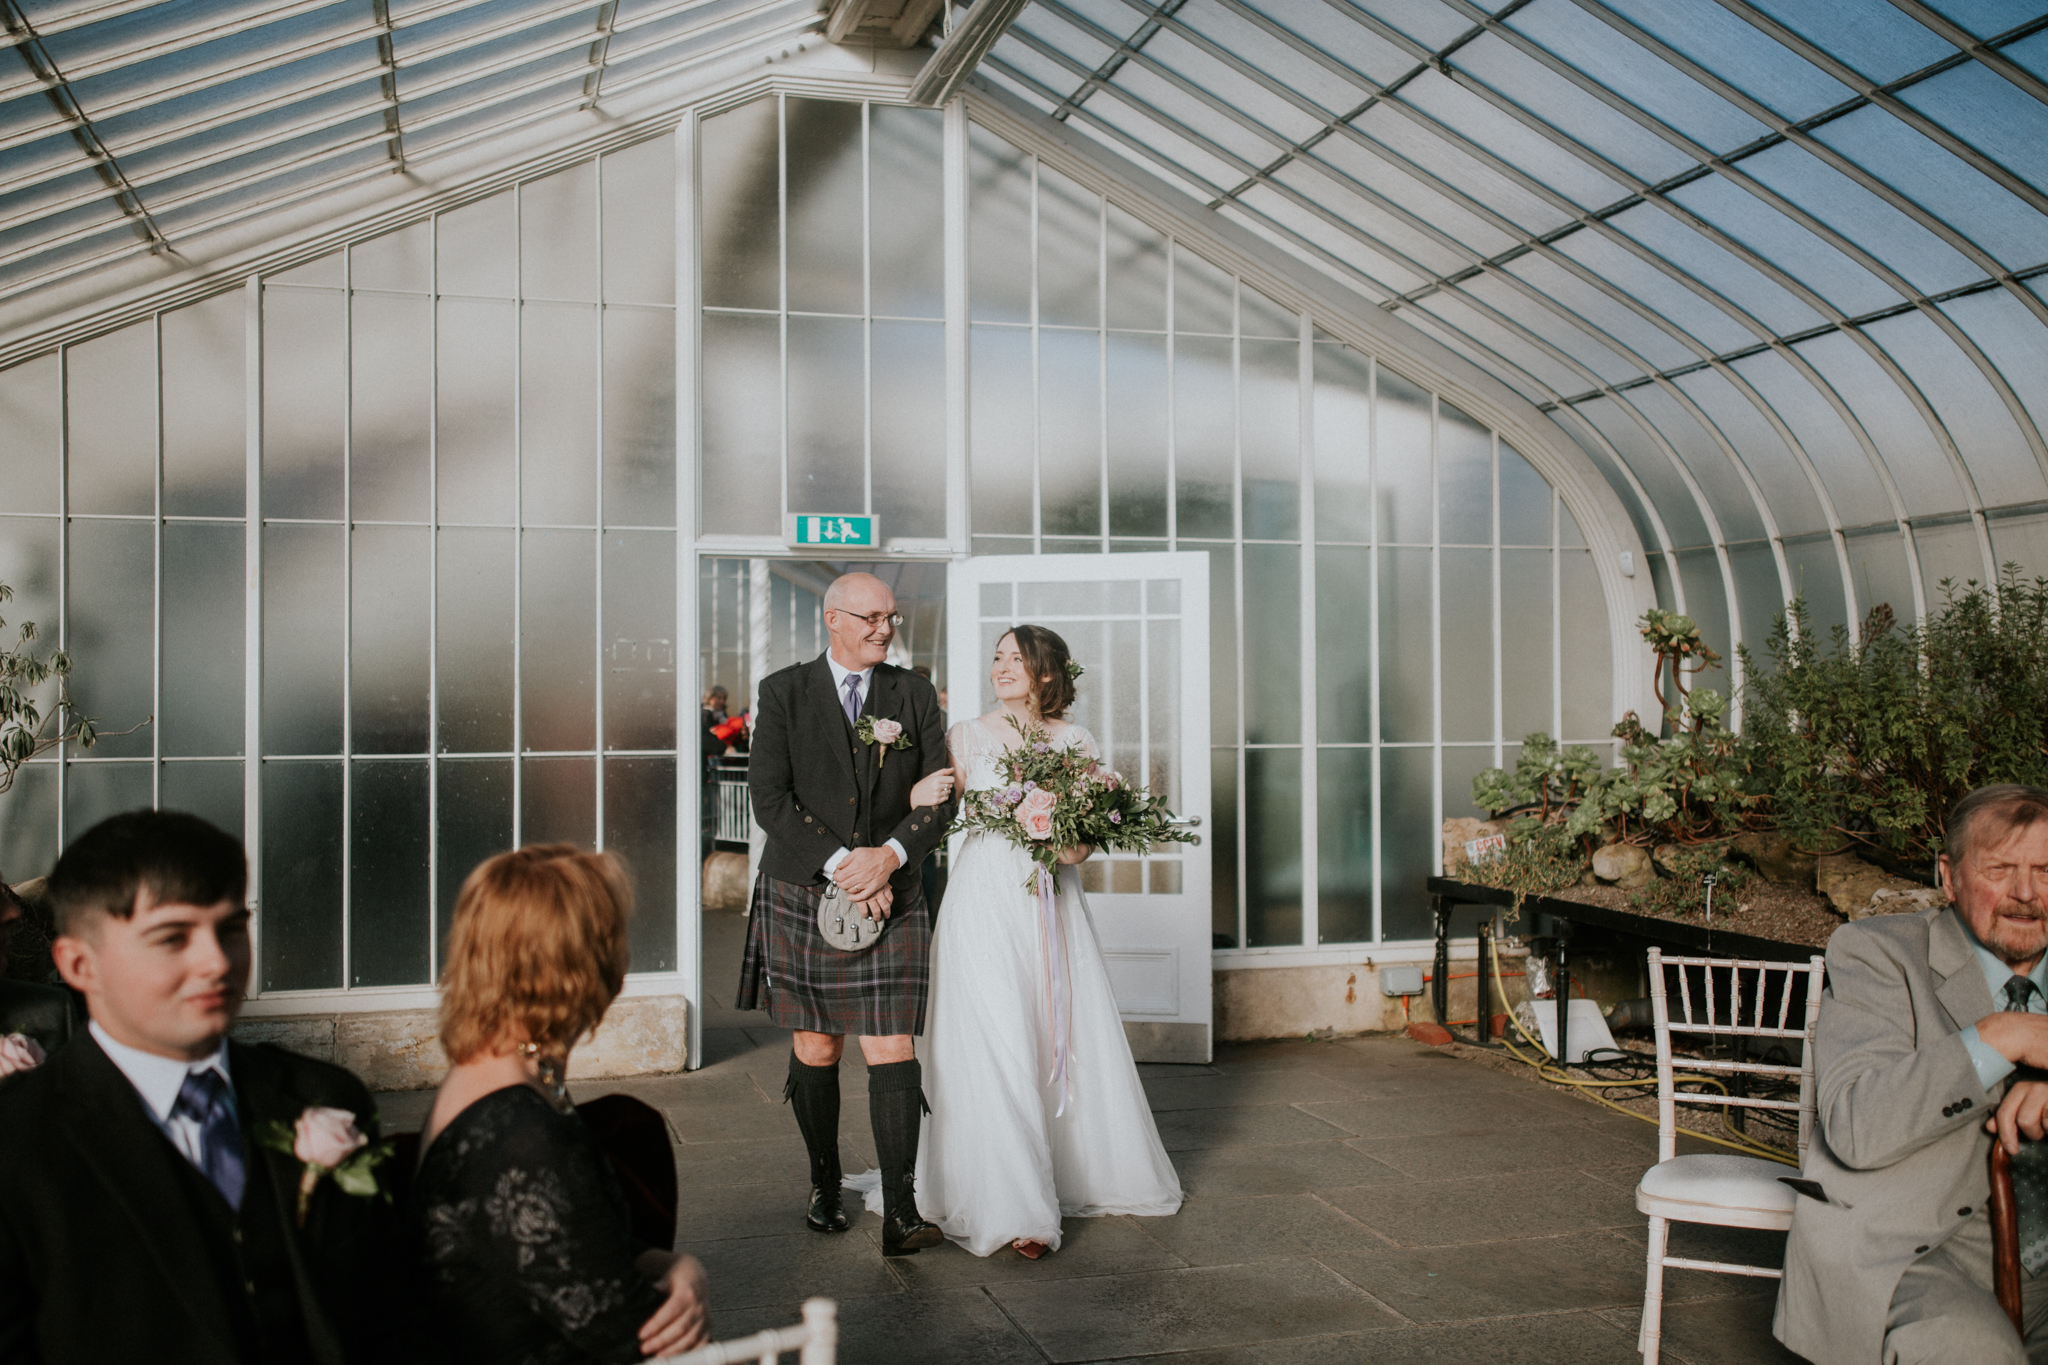 The bride is walking at the aisle with her father at the Botanic Gardens in Glasgow